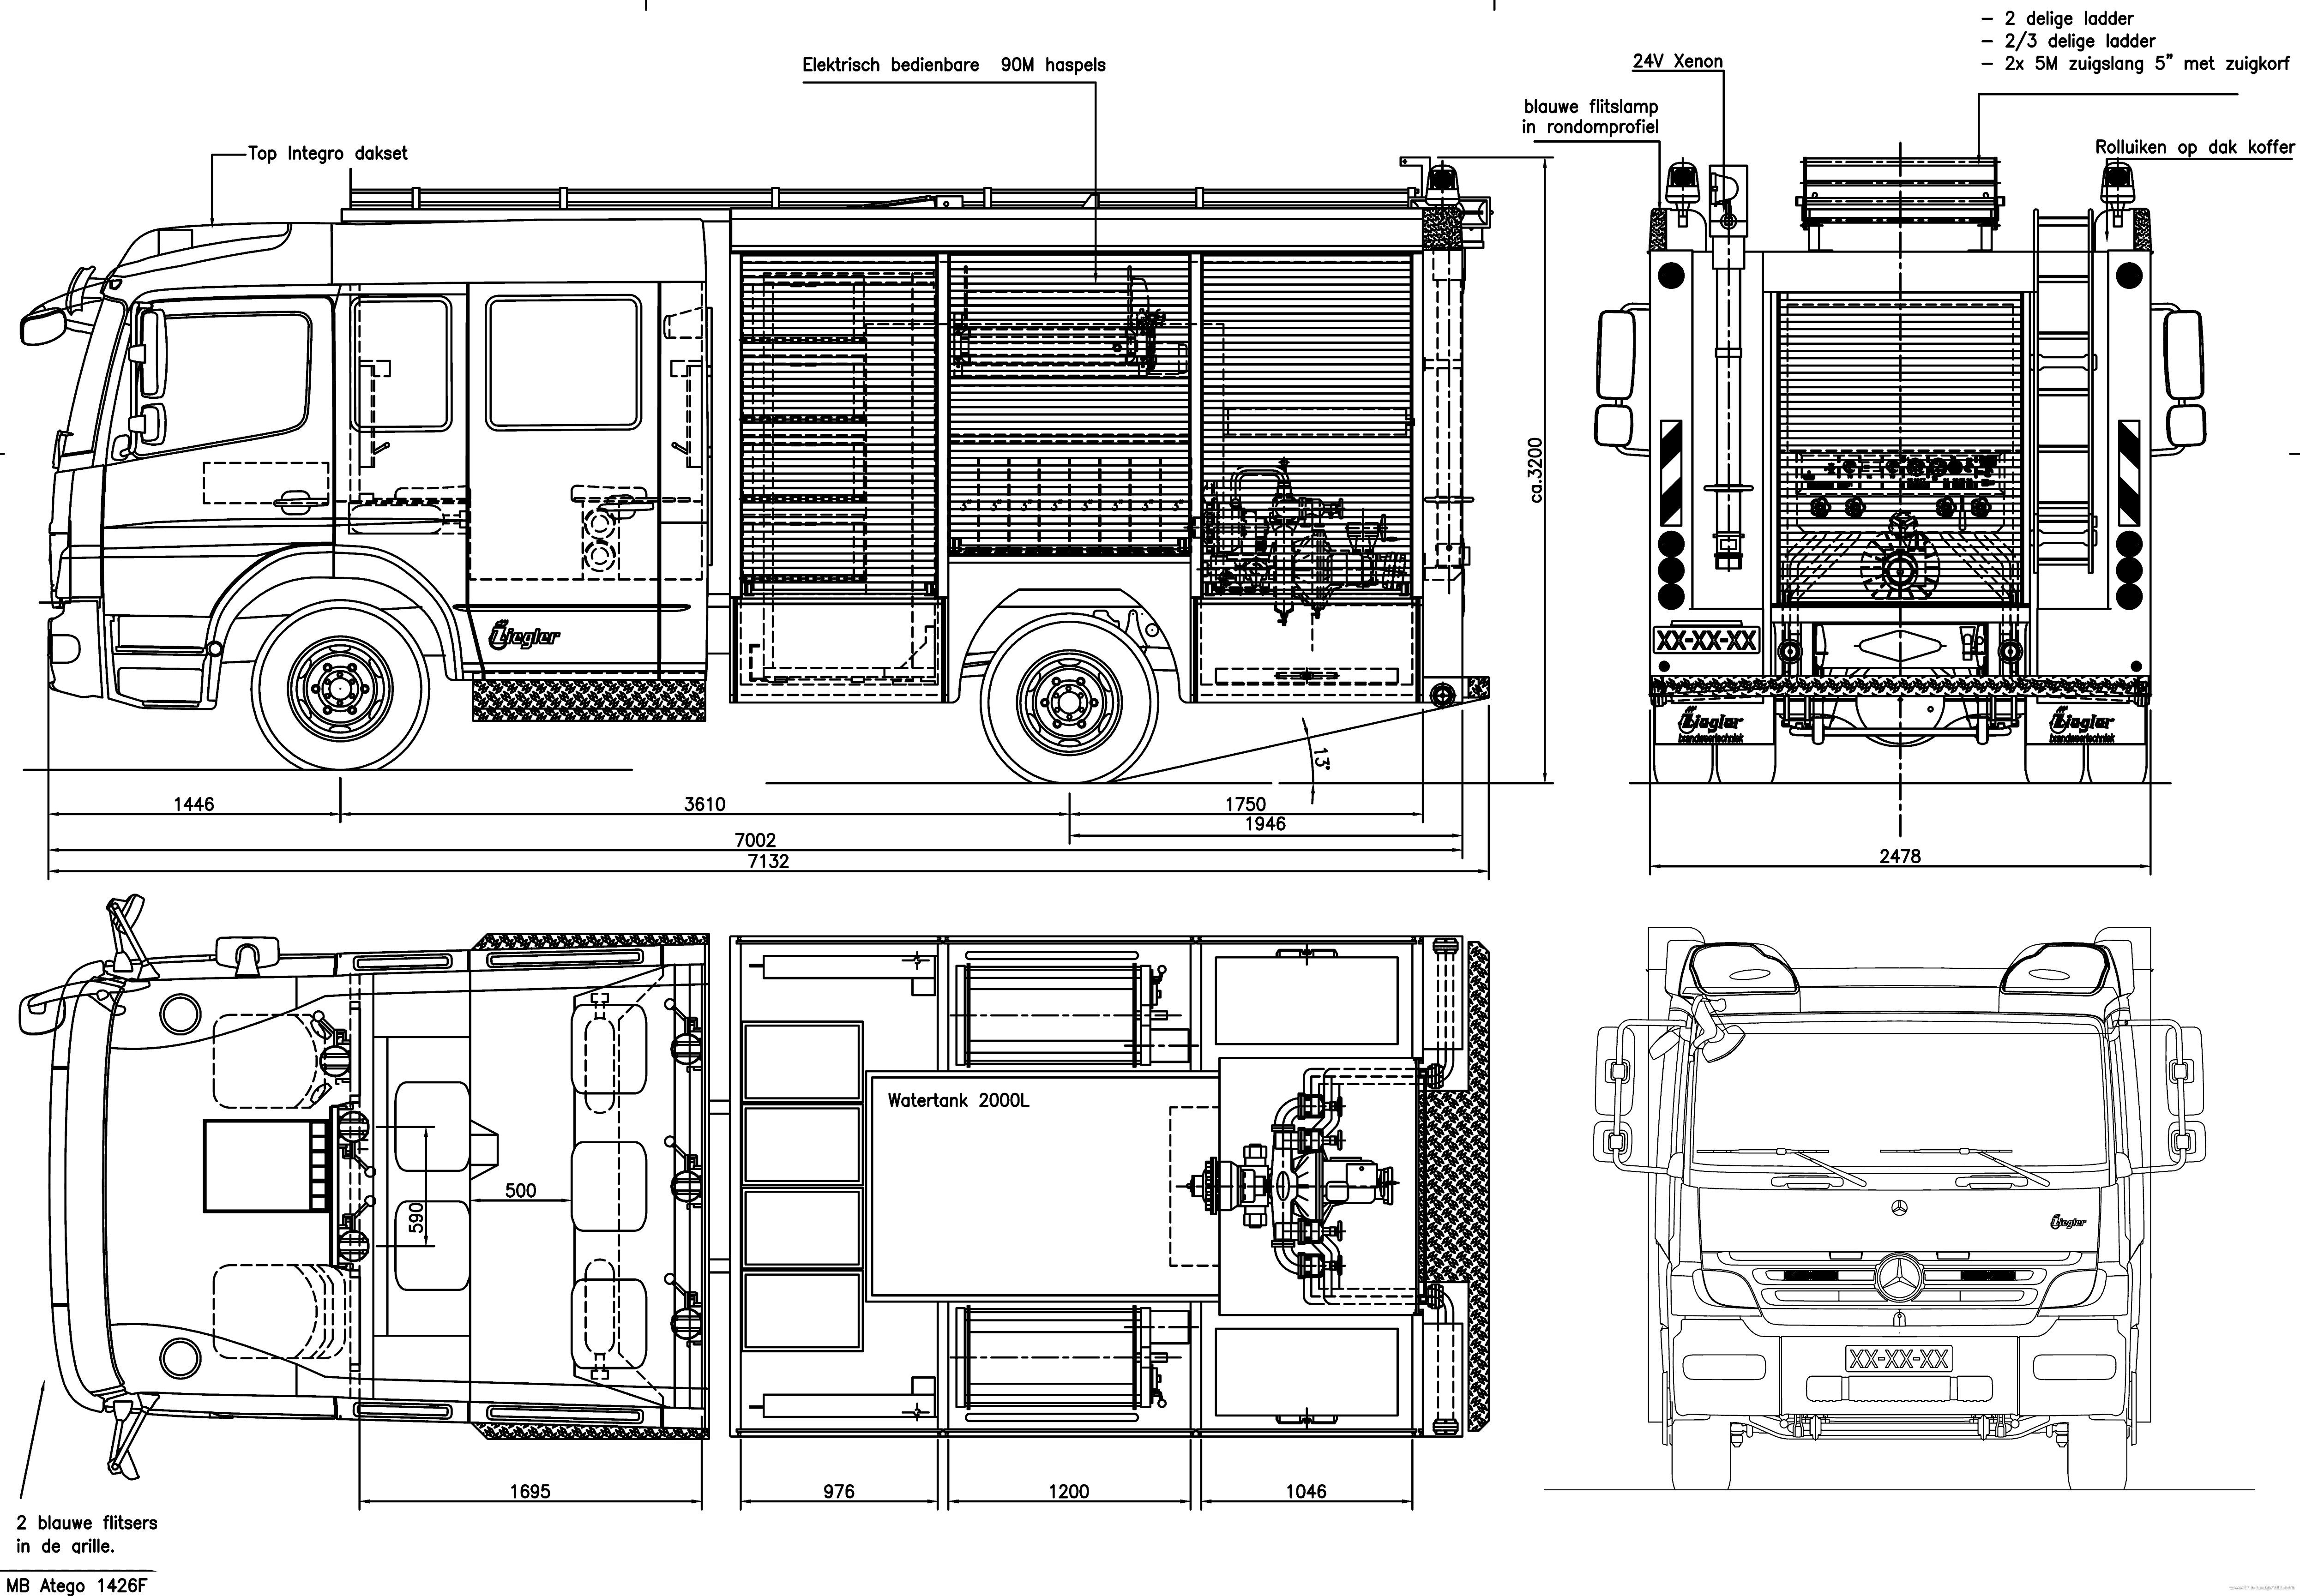 Charming Mercedes Benz Atego Fire Blueprints